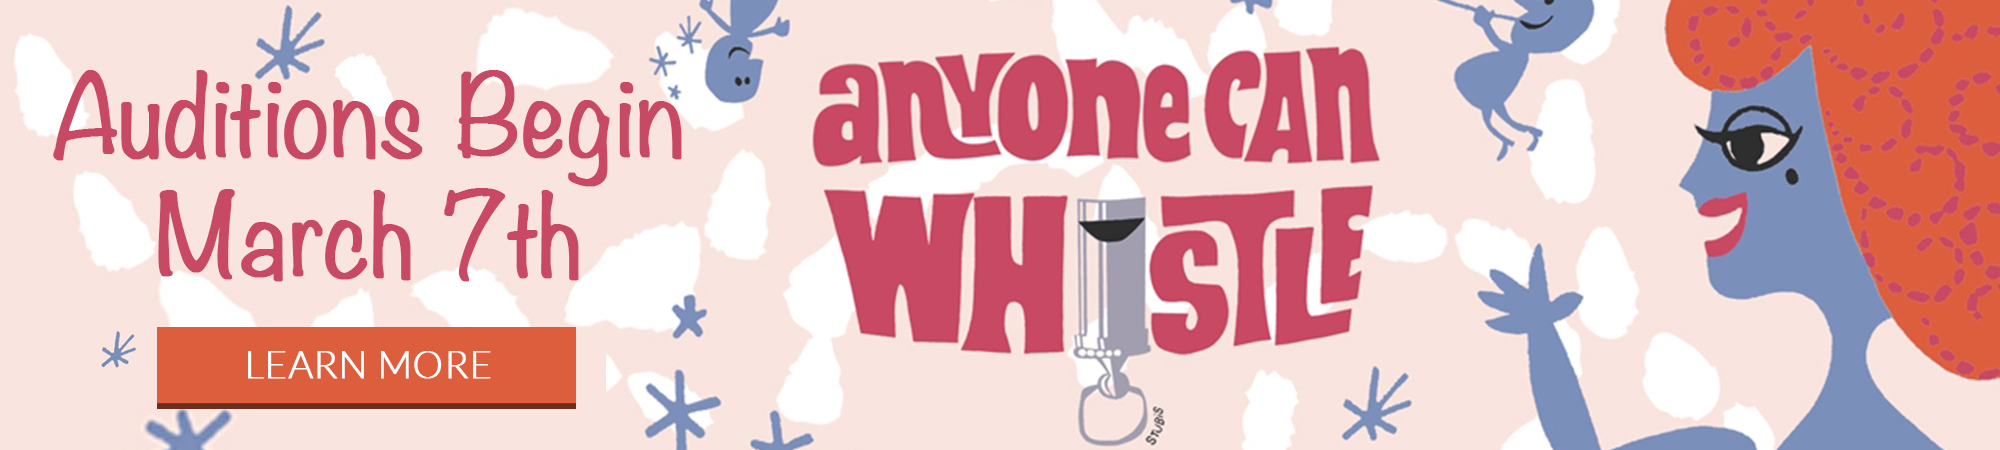 whistle-audition-banner